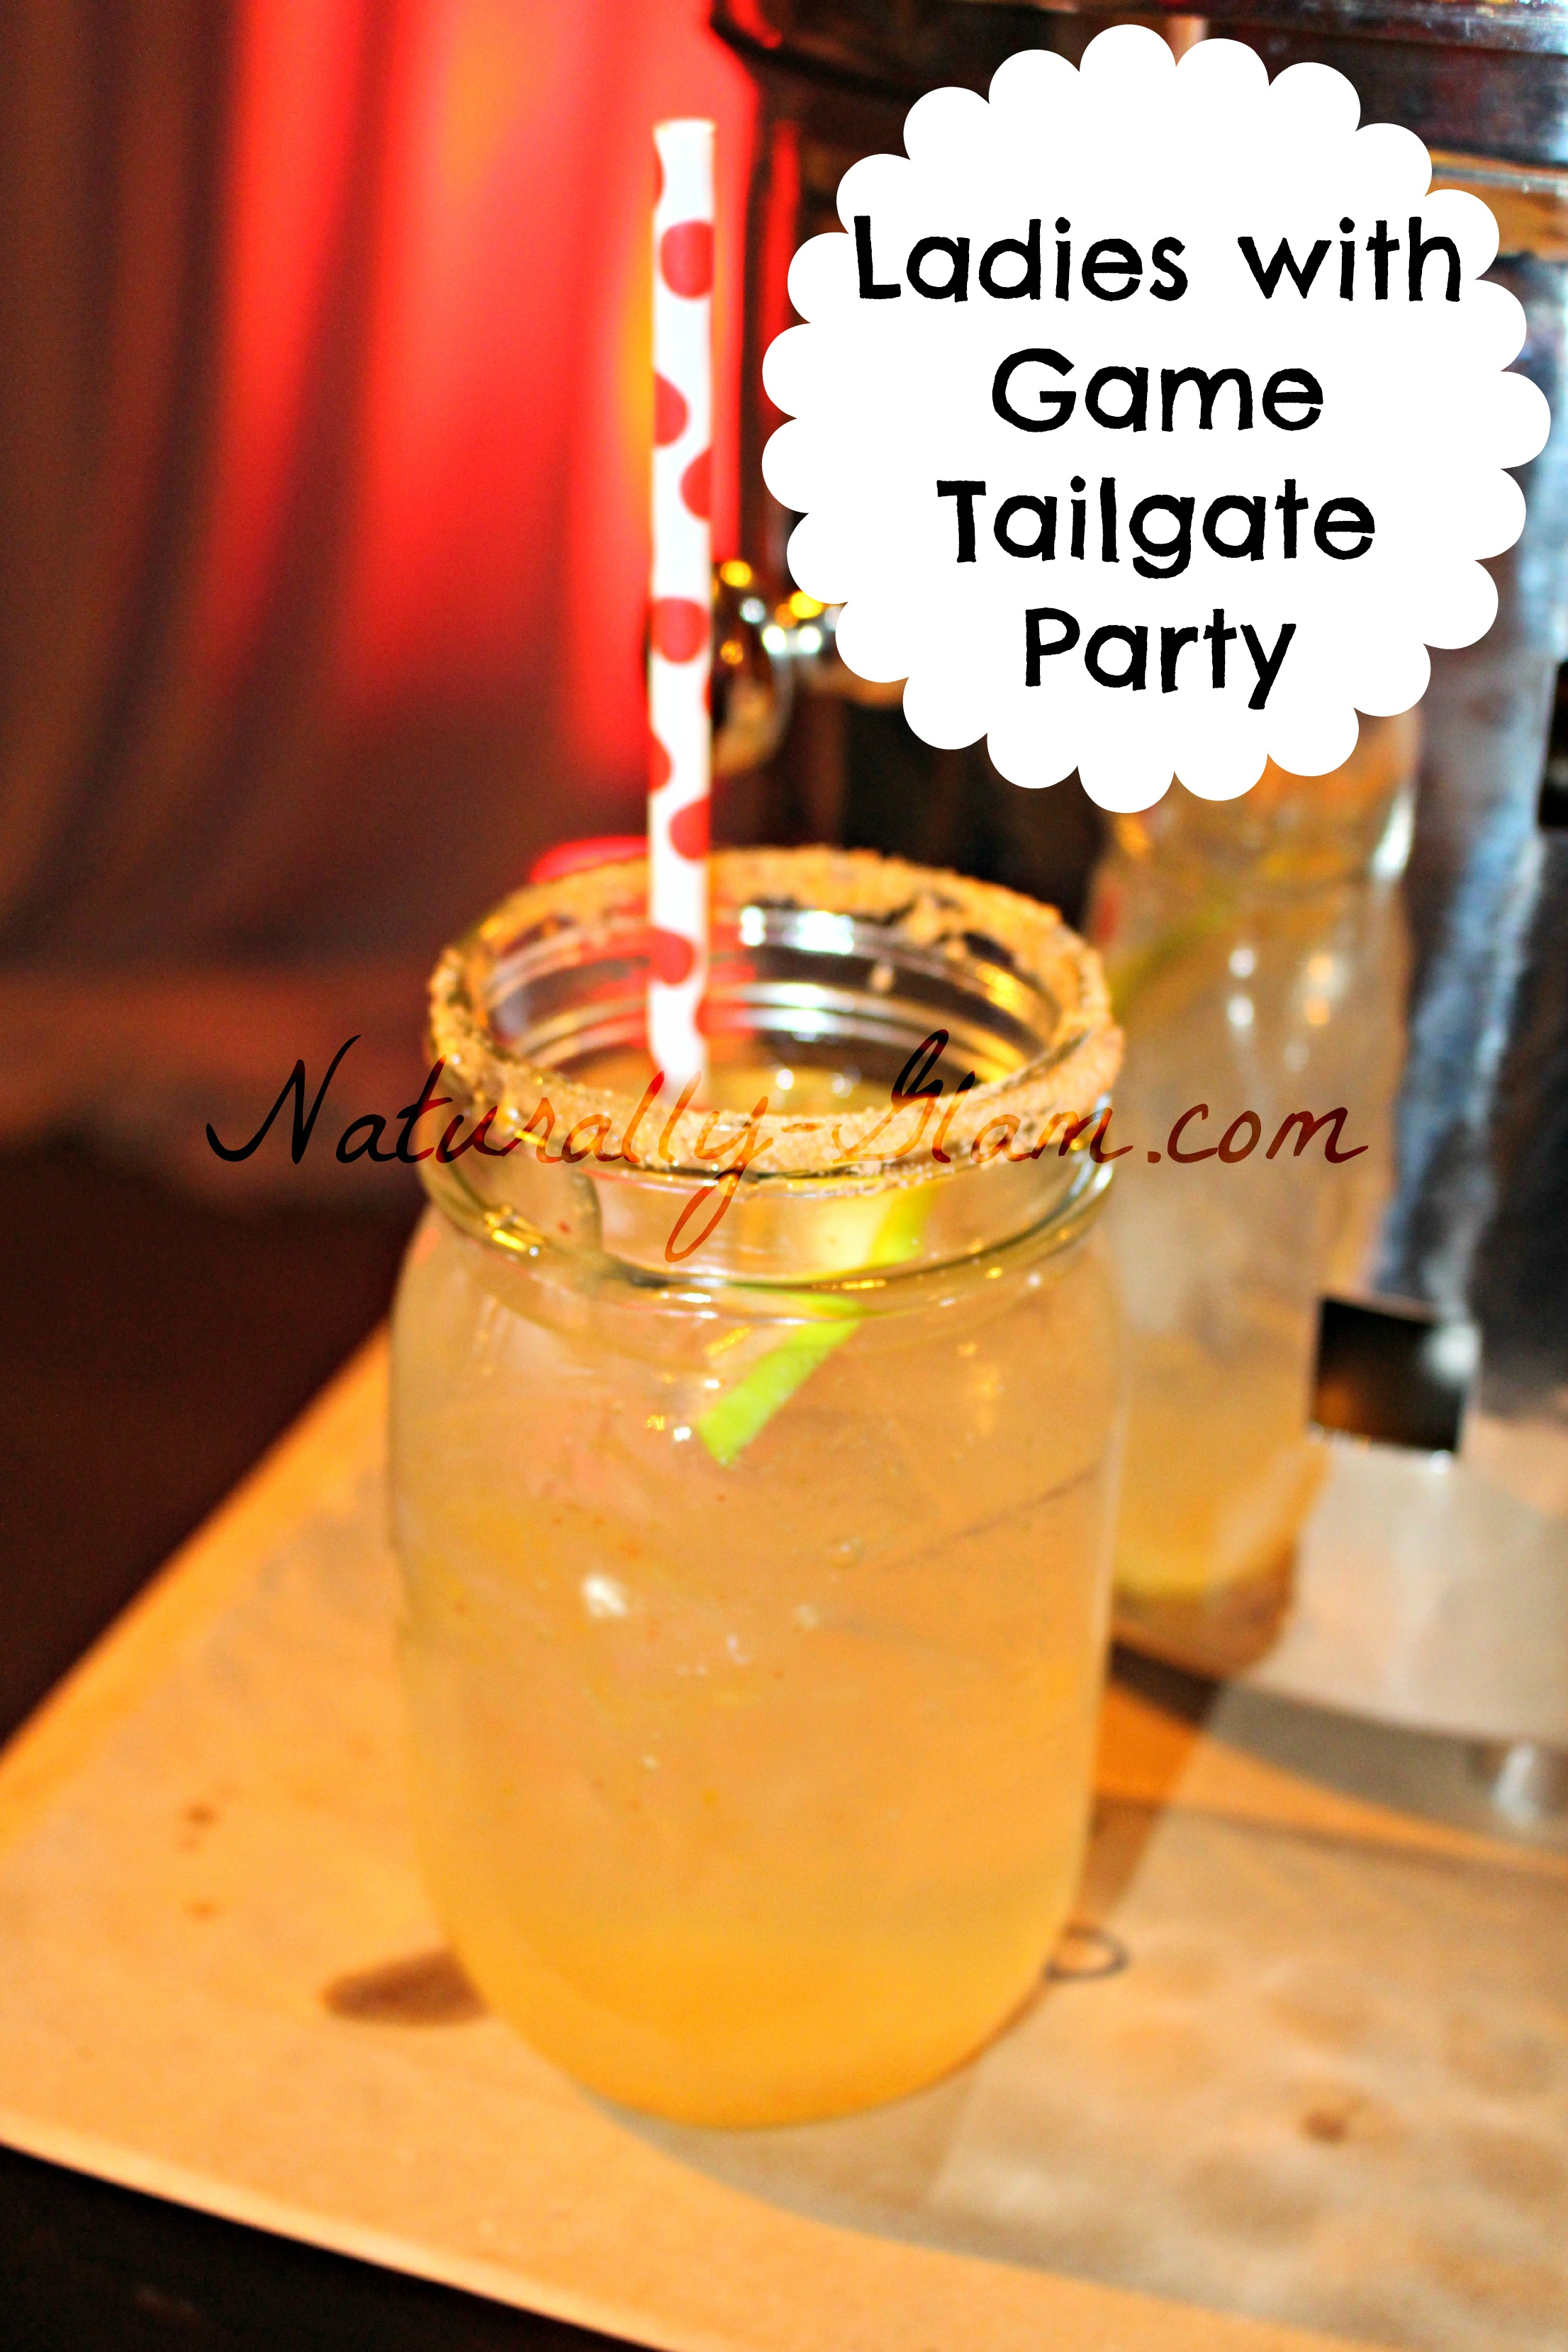 Smirnoff Ice Ladies With Game Tailgate Party + BeautyBChat Linkup Party